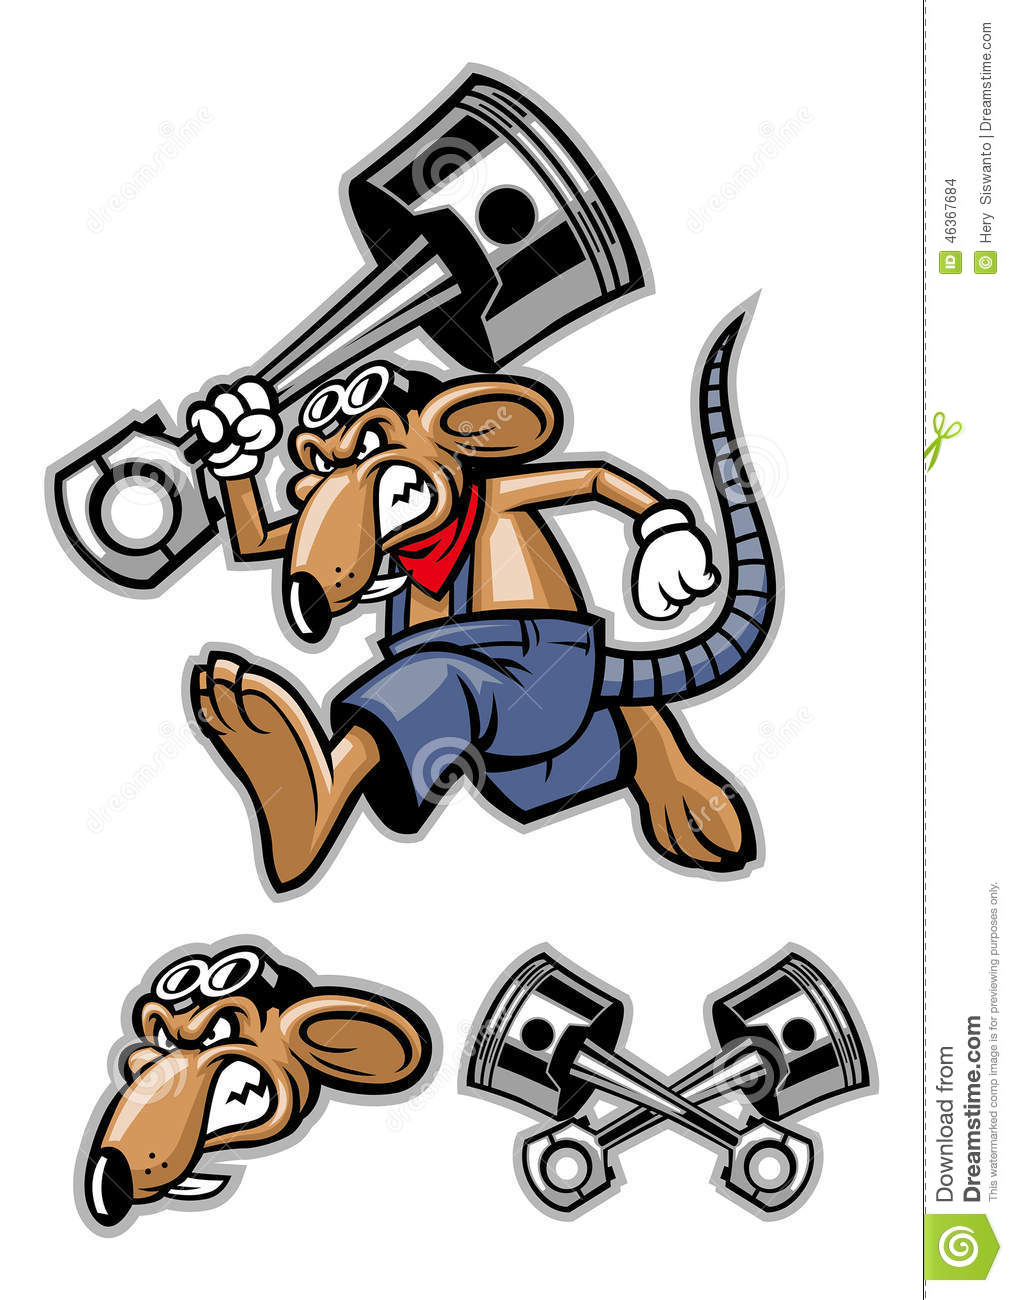 rat mascot holding a big piston stock vector illustration of part